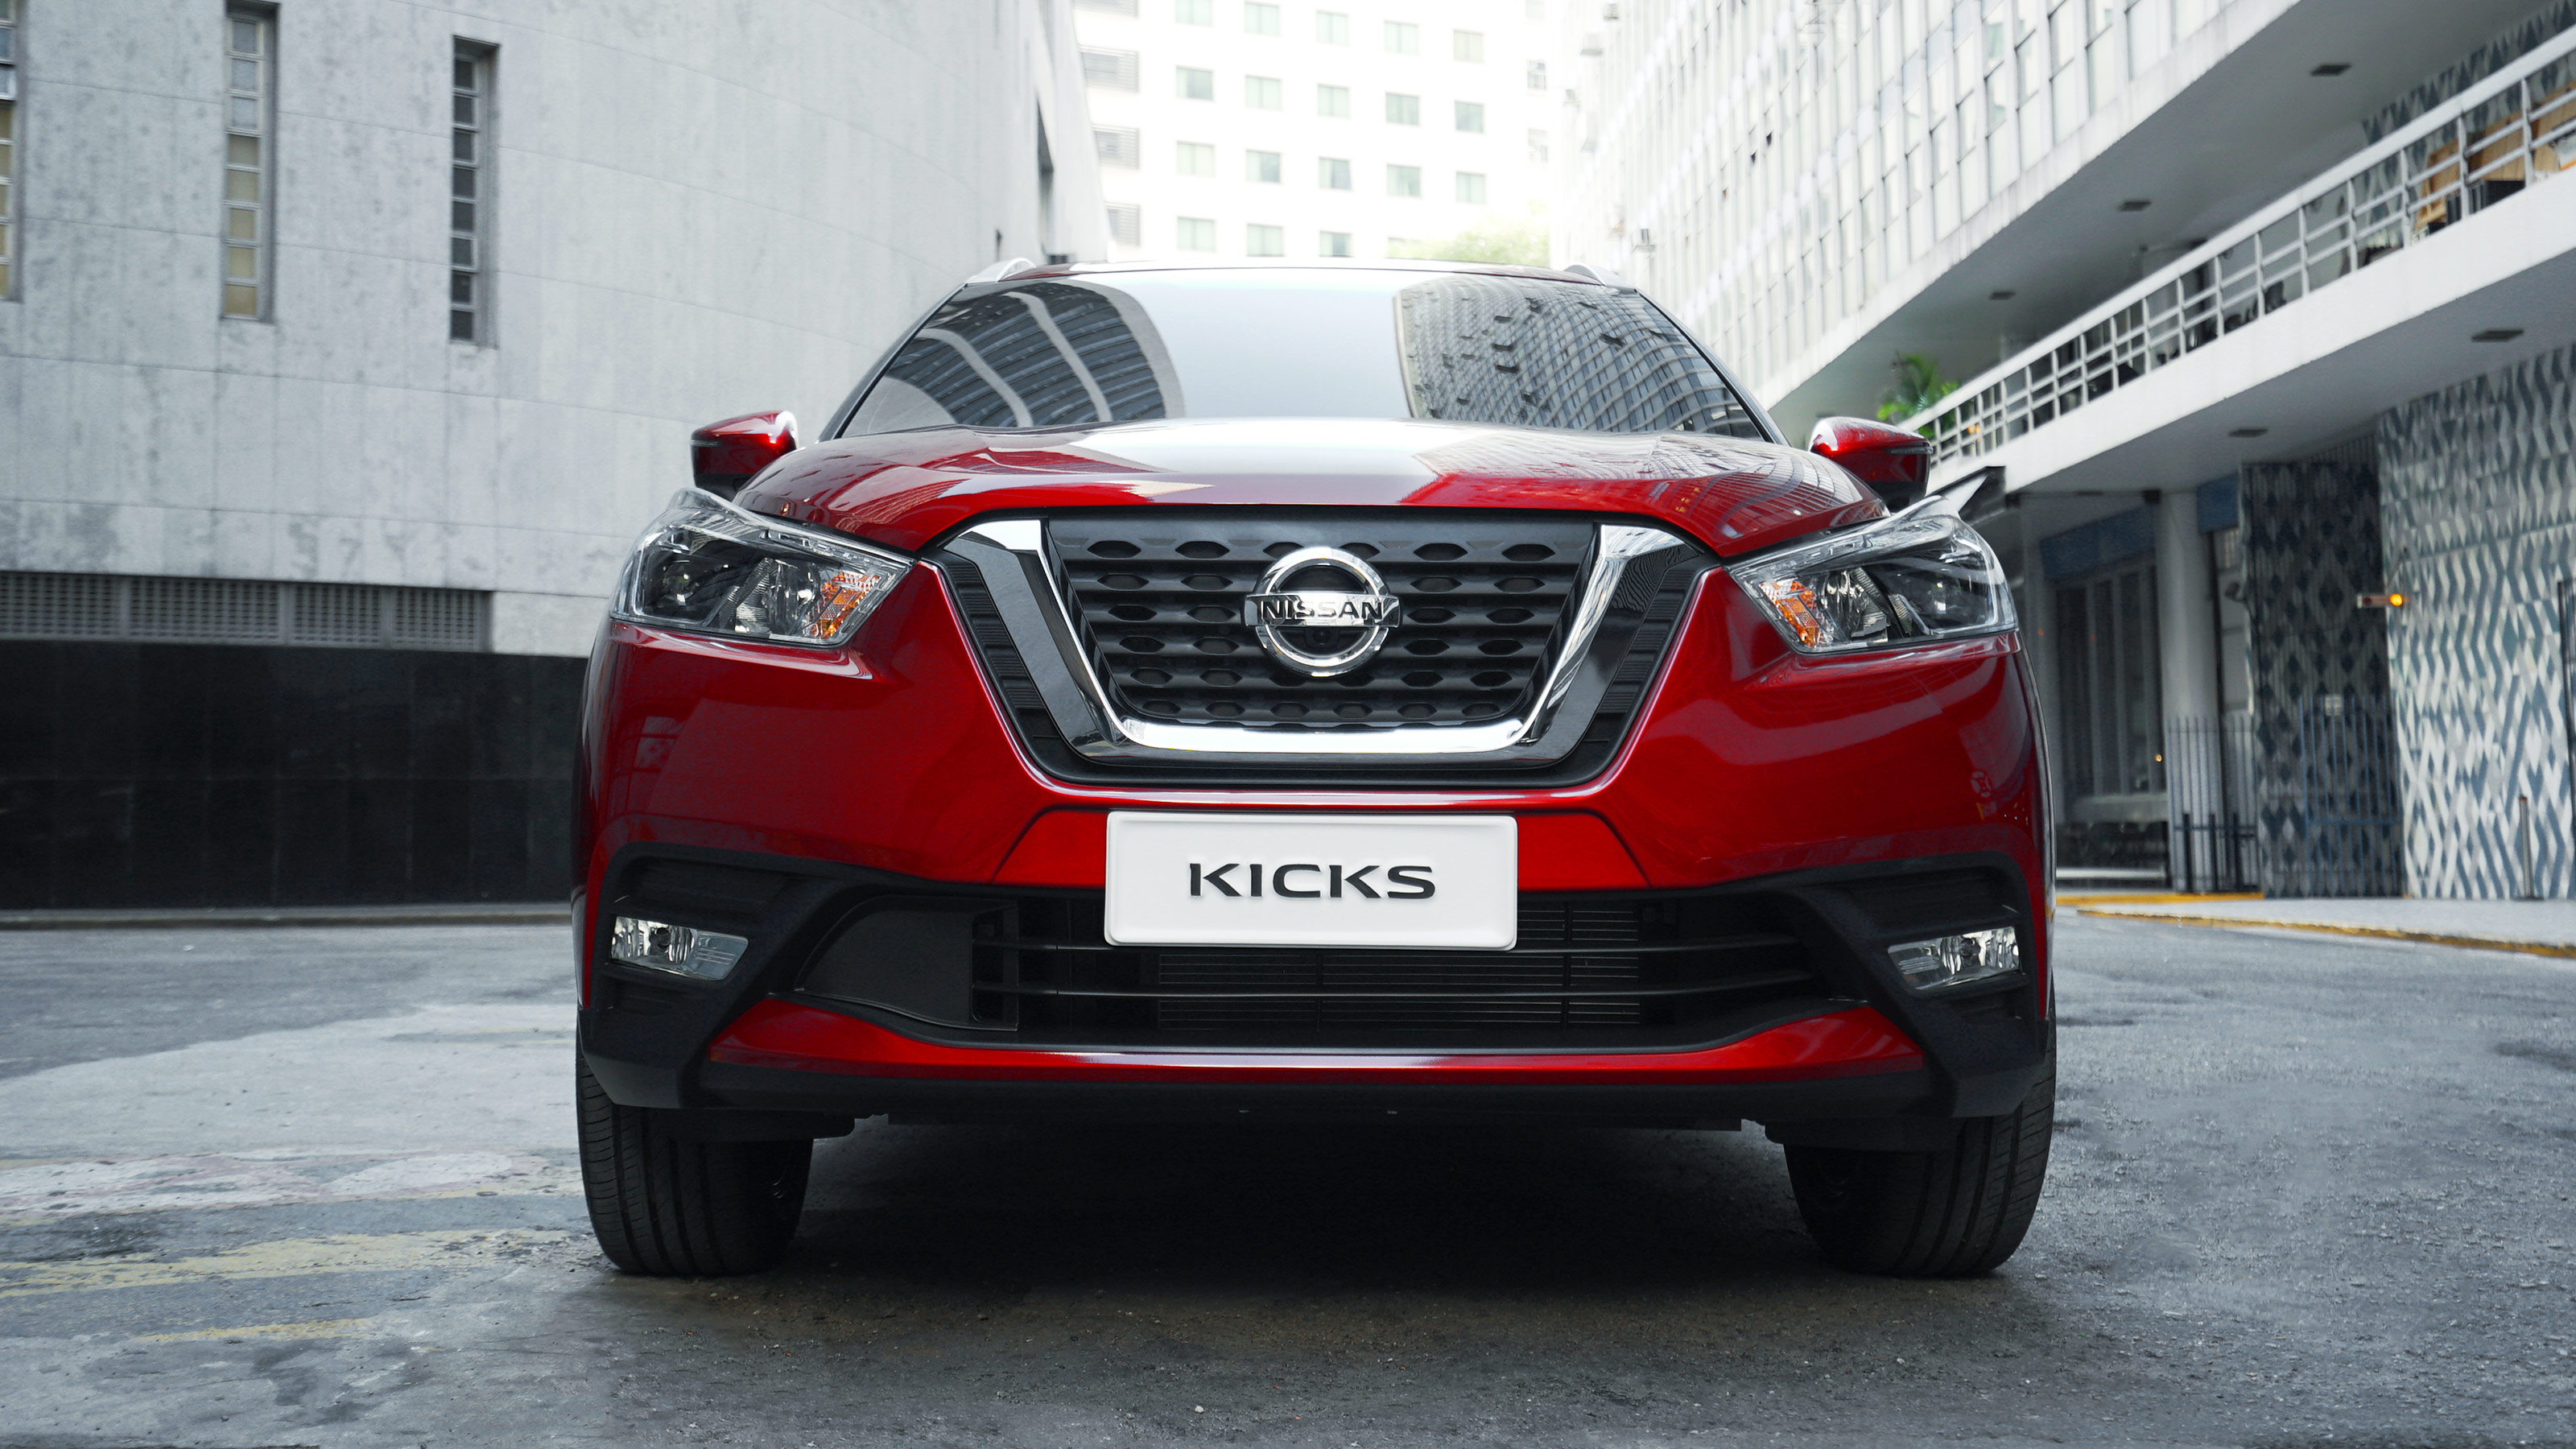 Nissan Kicks parrilla